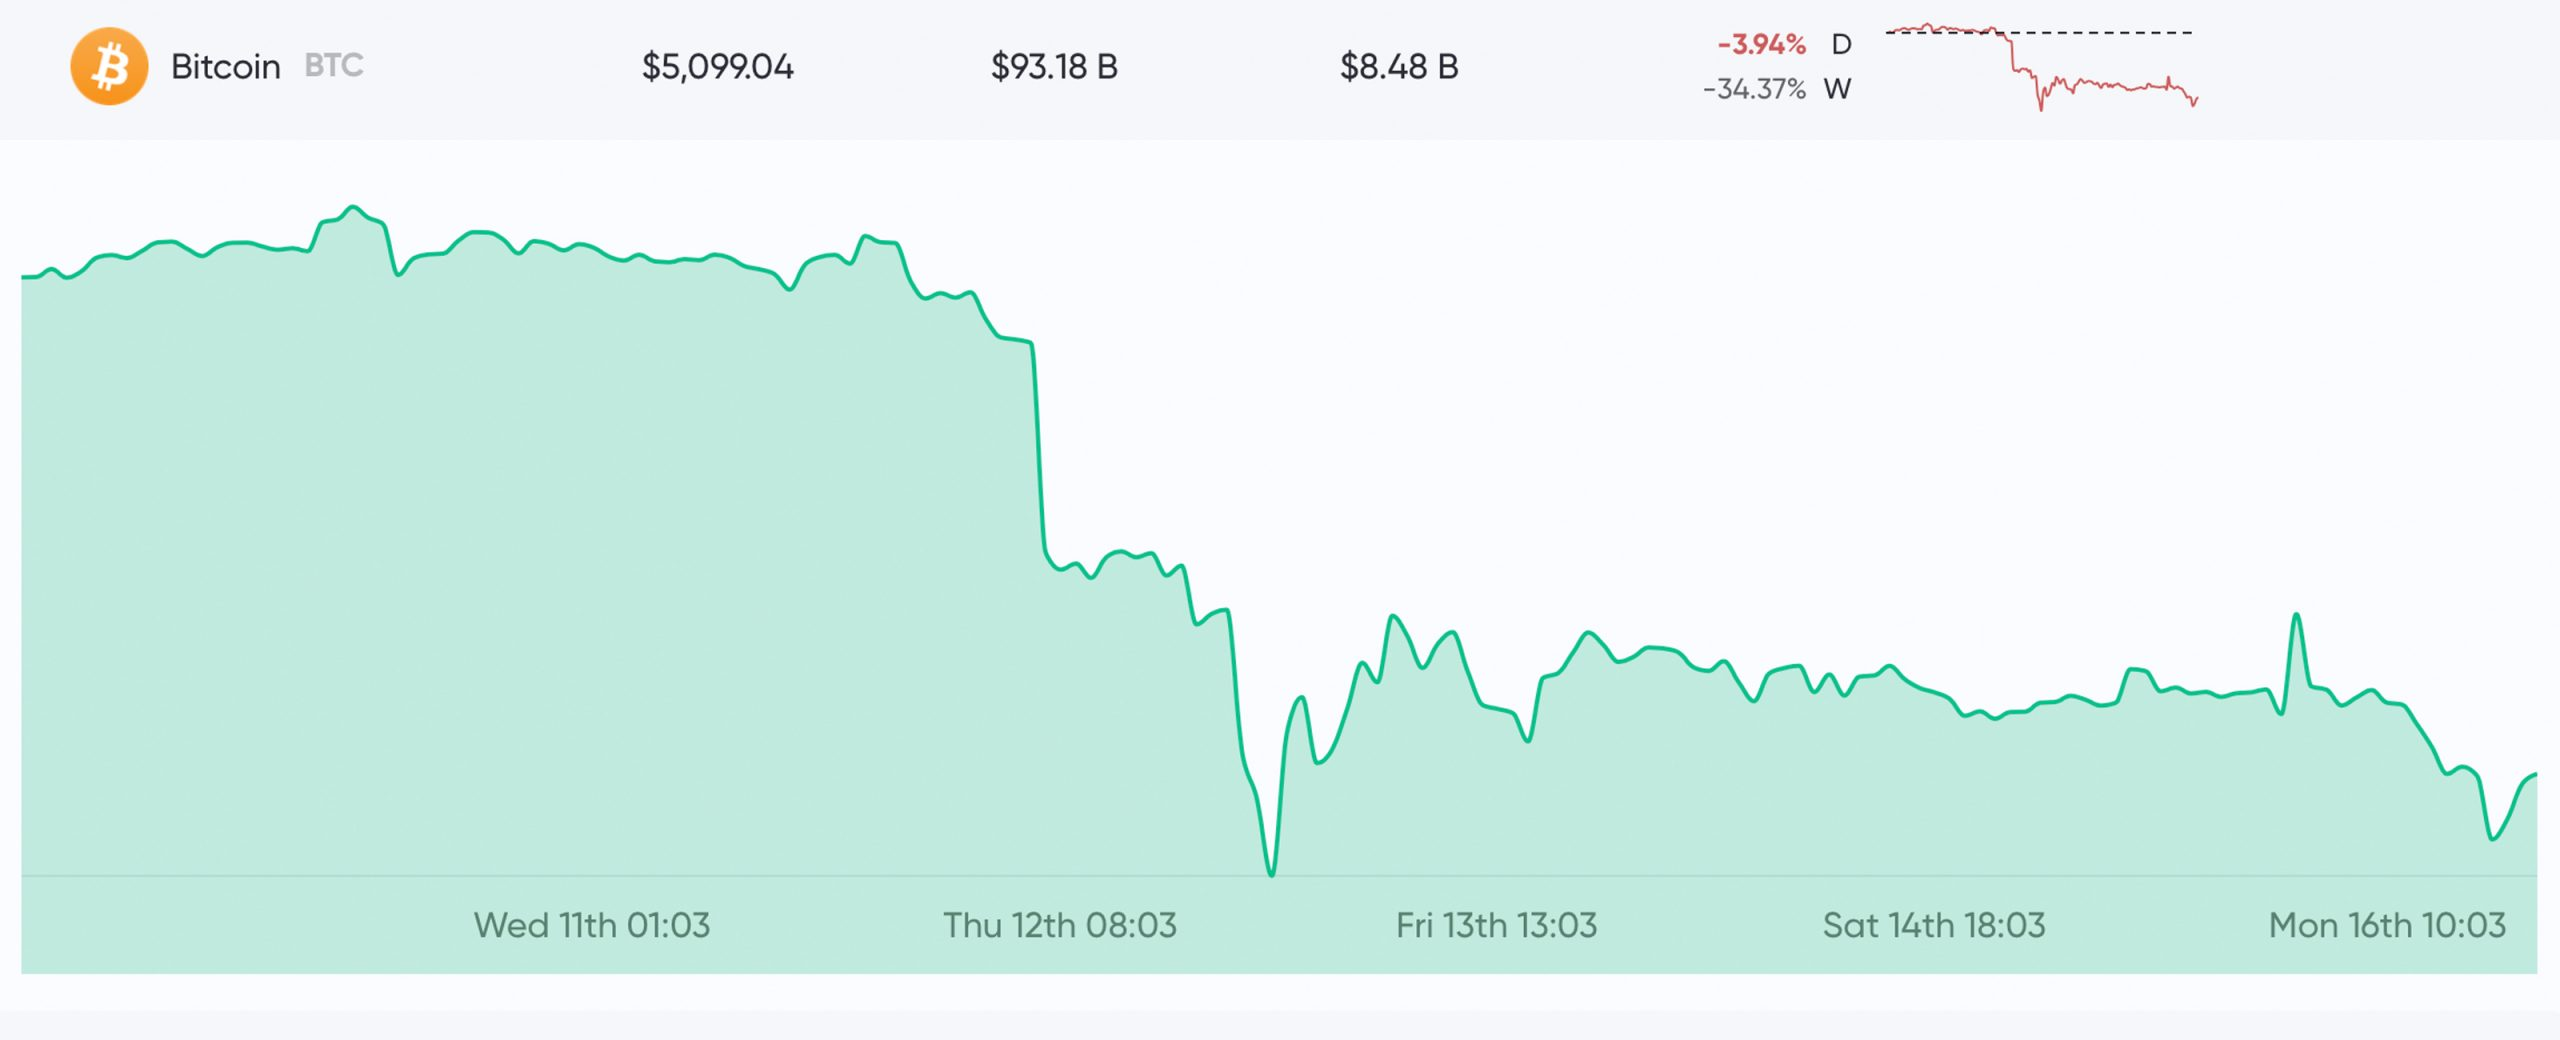 Bitcoin Reacts to Fed's 0% Rate Drop, Reserve Requirements Removed, $700B in Stimulus